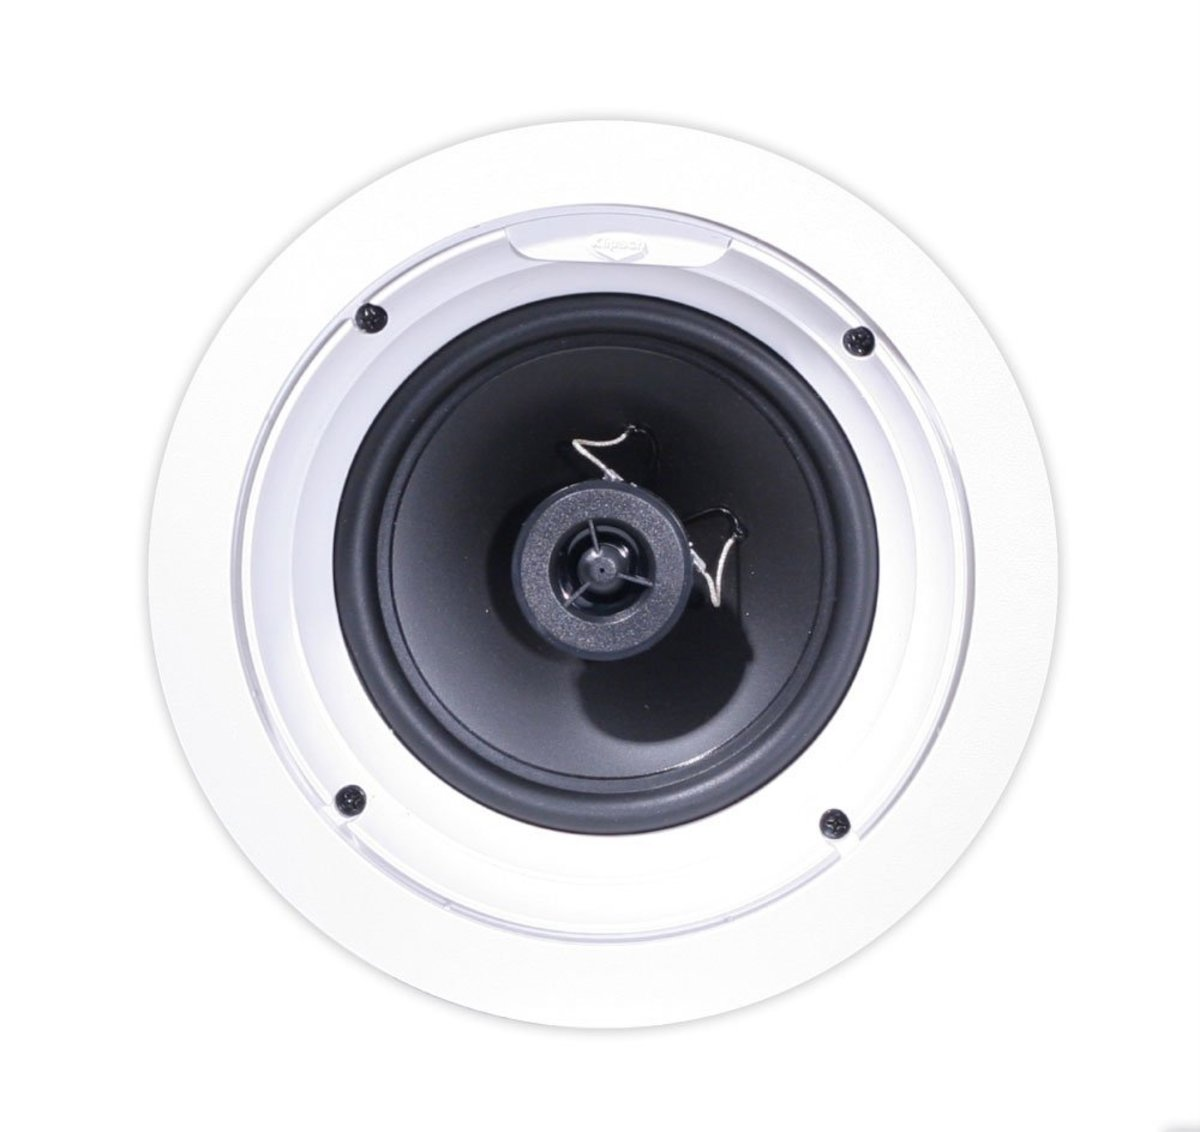 Klipsch in-ceiling loudspeakers (Model No R-1800-C), best for home theater and surround sound.